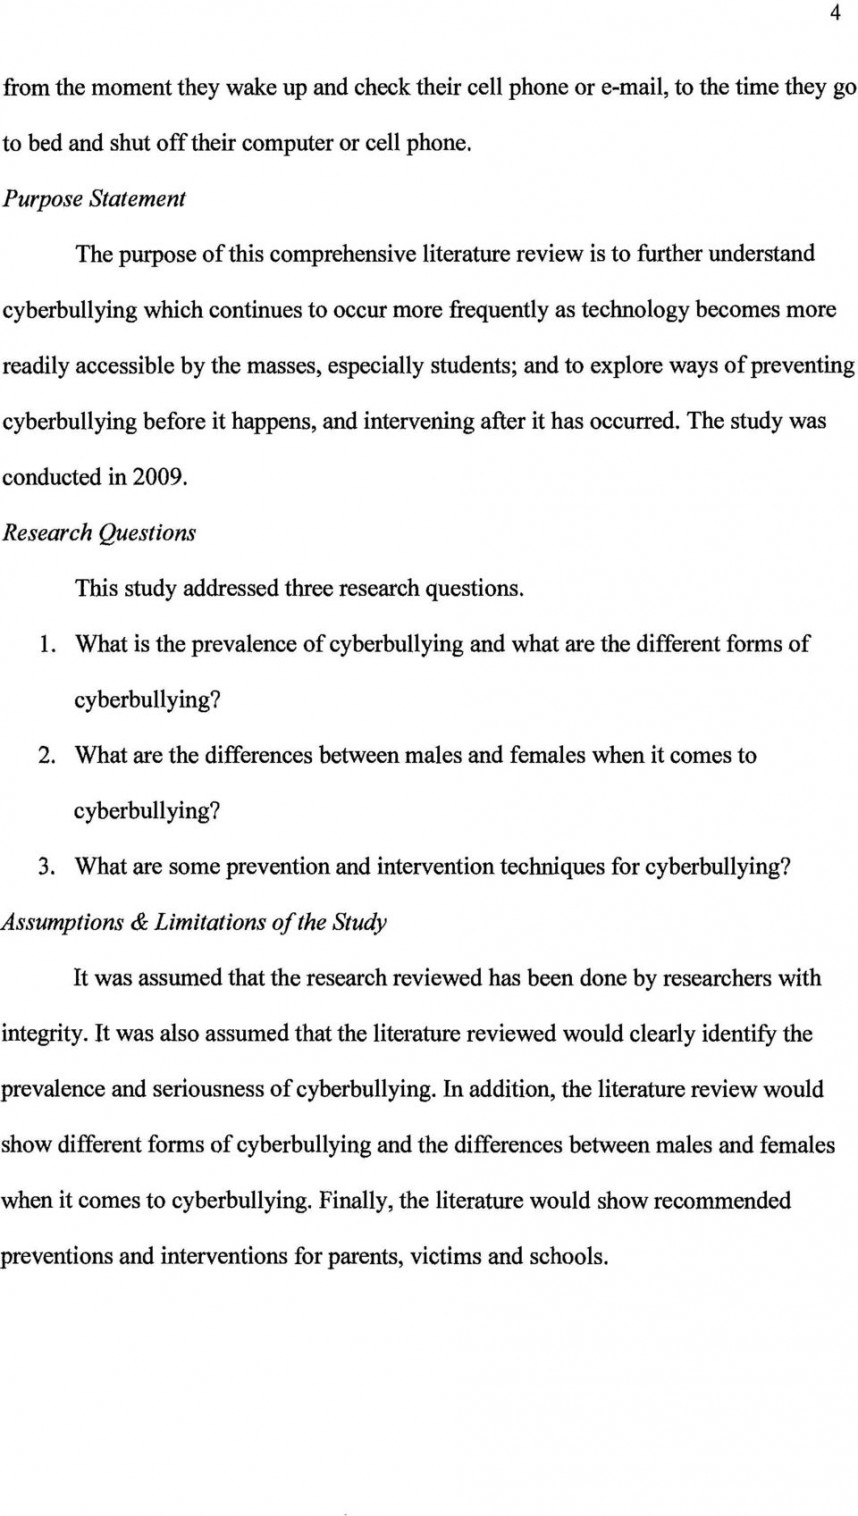 004 Cyberbullying Research Questions Paper Page 8 Awful Topics